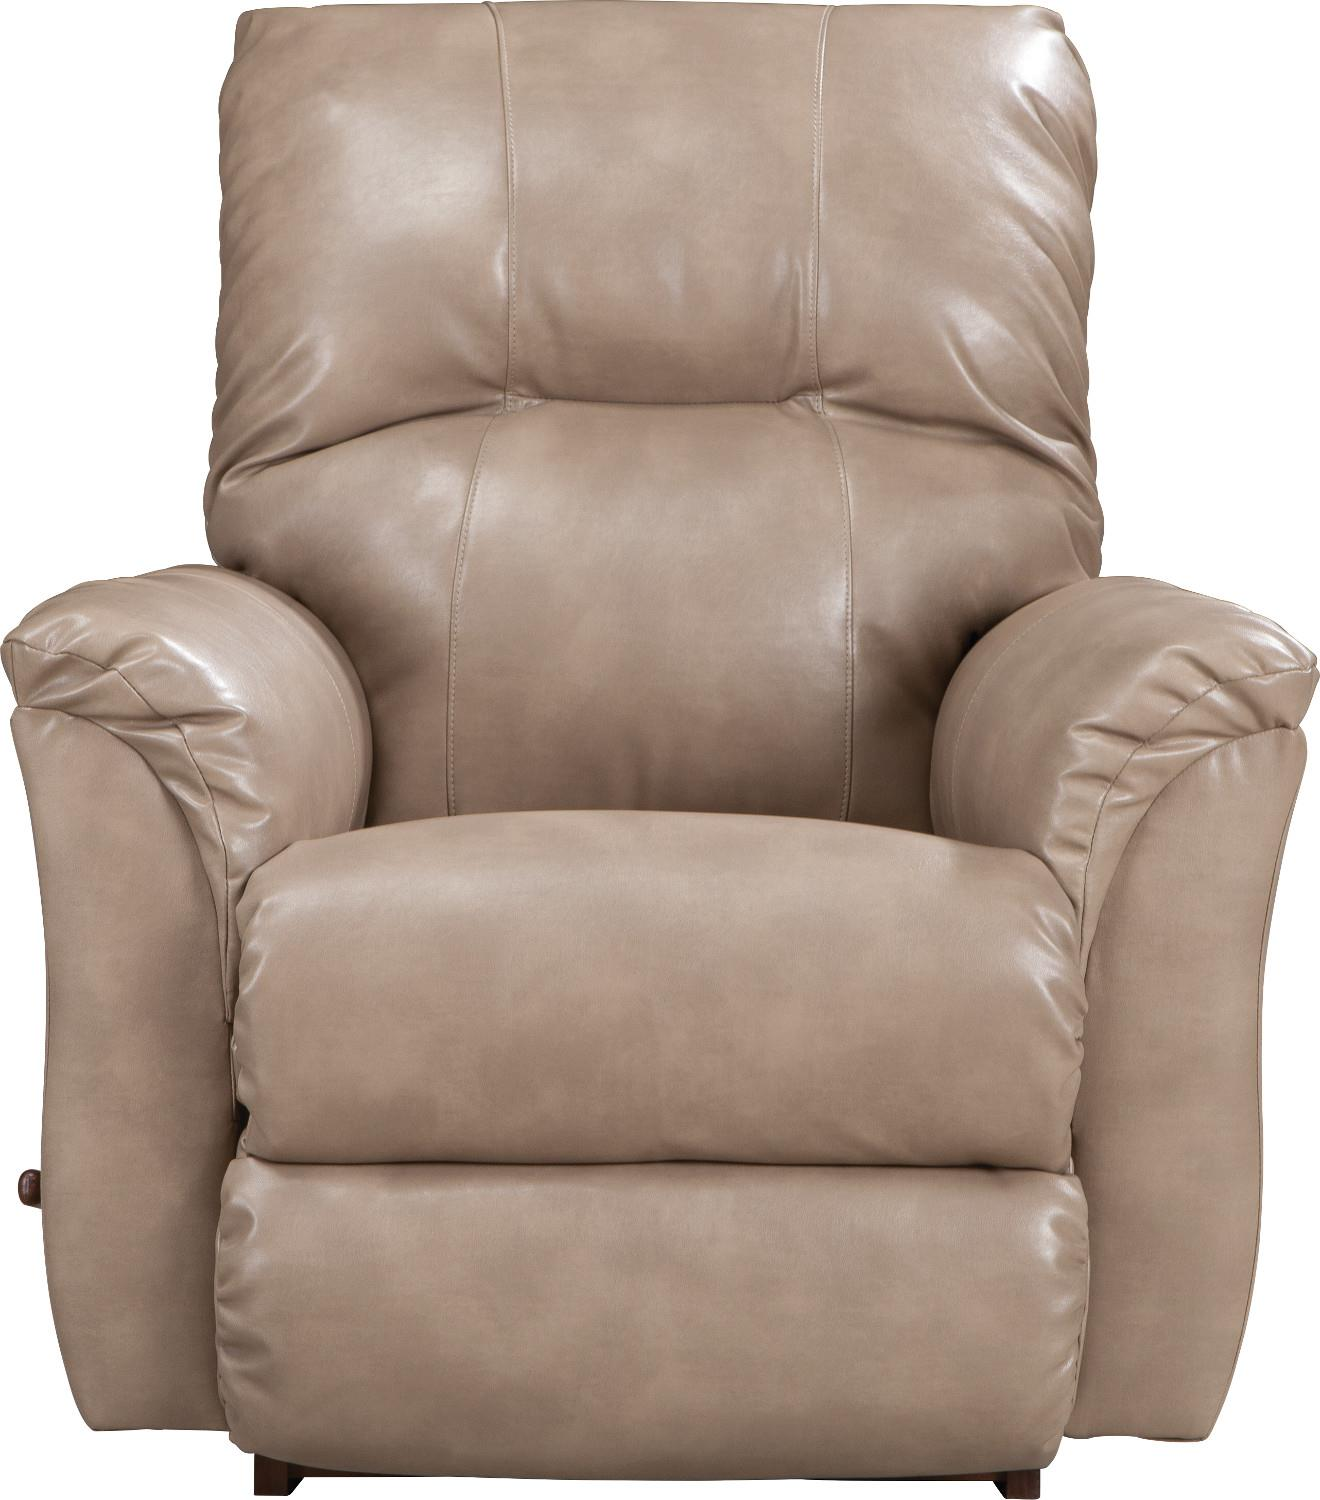 z reclina way chair joshua recliners reclining recliner height wall reclinersjoshua threshold saver item la width boy trim products